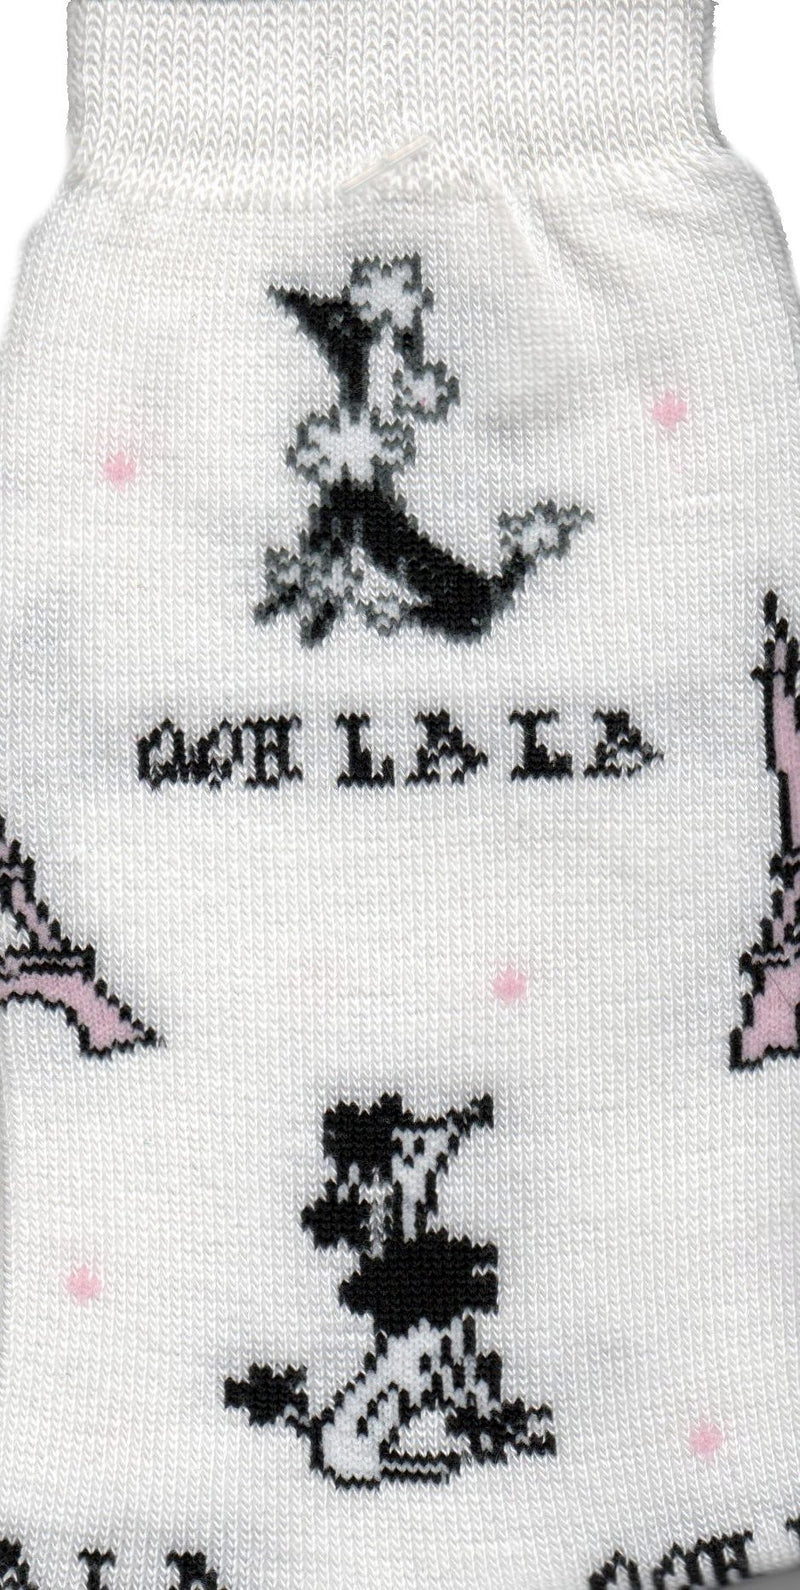 She is a Queen and she knows it this Poodle on OOh La La Sock all on a White background. Pink circles balls or Champagne bubbles? The Poodle is Black and White. The Eiffel Tower is Black and Pink.